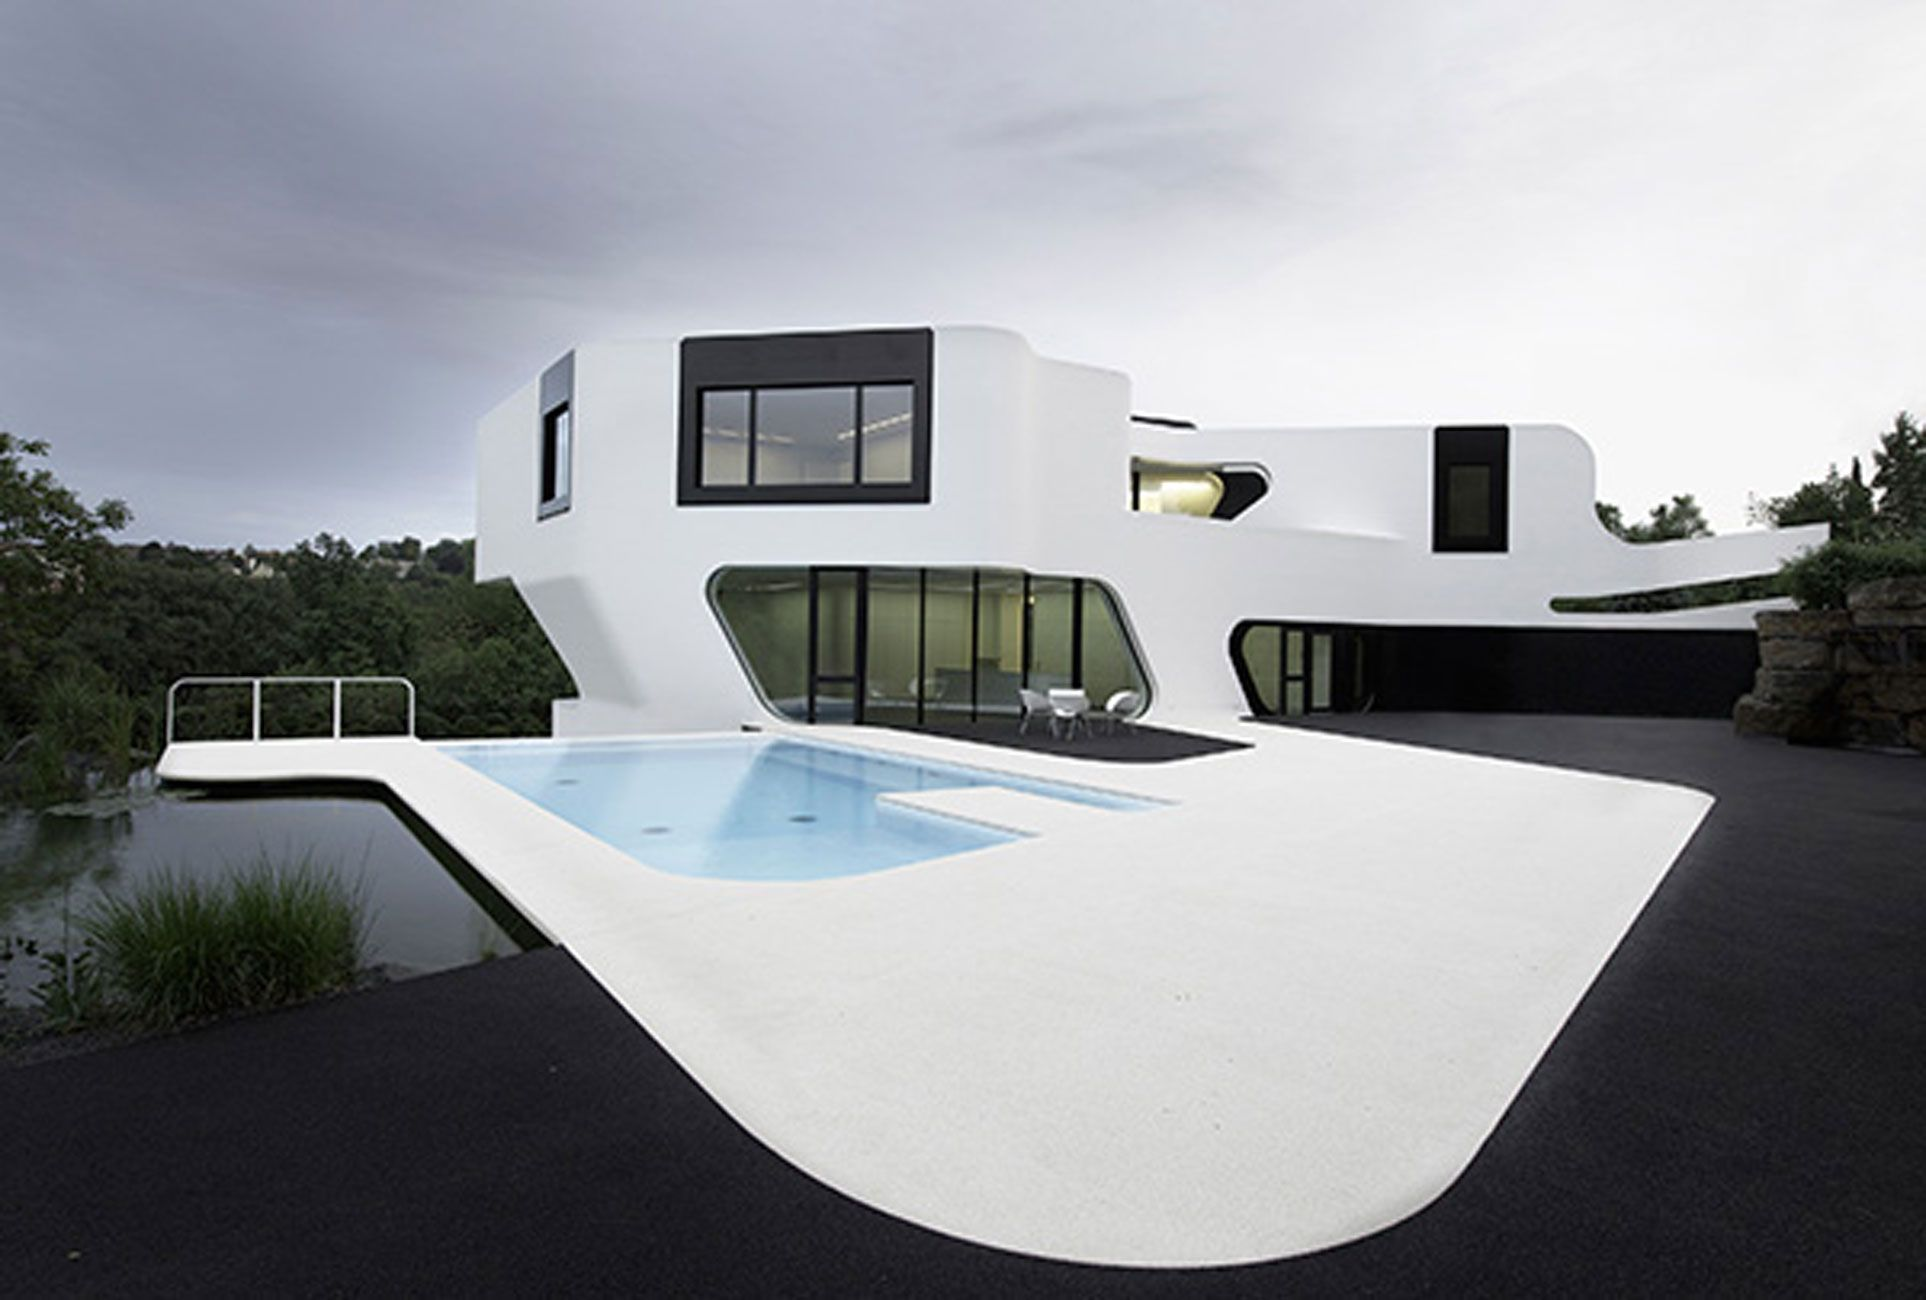 Contemporary Residence with Futuristic Design in Germany - Pool ...